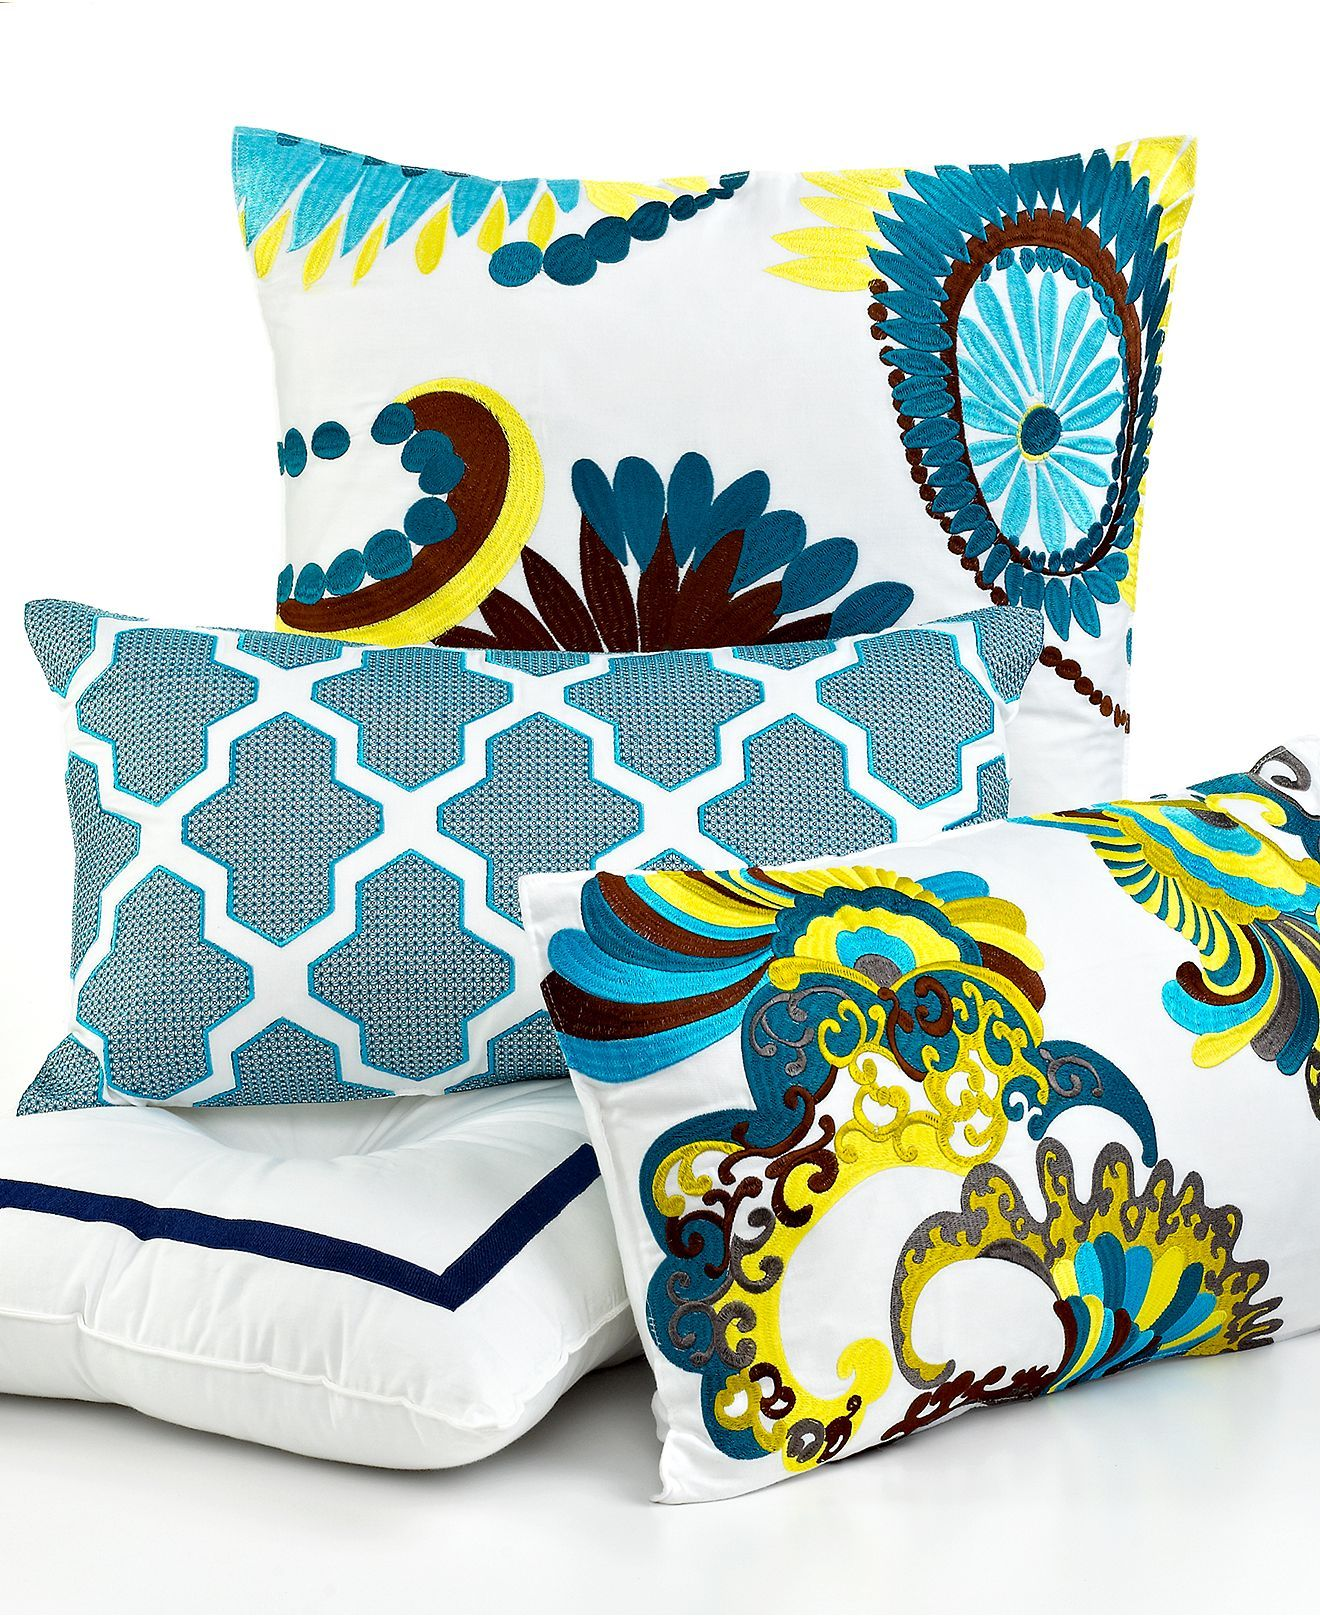 Macy's Decorative Pillows New Trina Turk Bedding Stones Decorative Pillows  Apartment Bedding Design Ideas